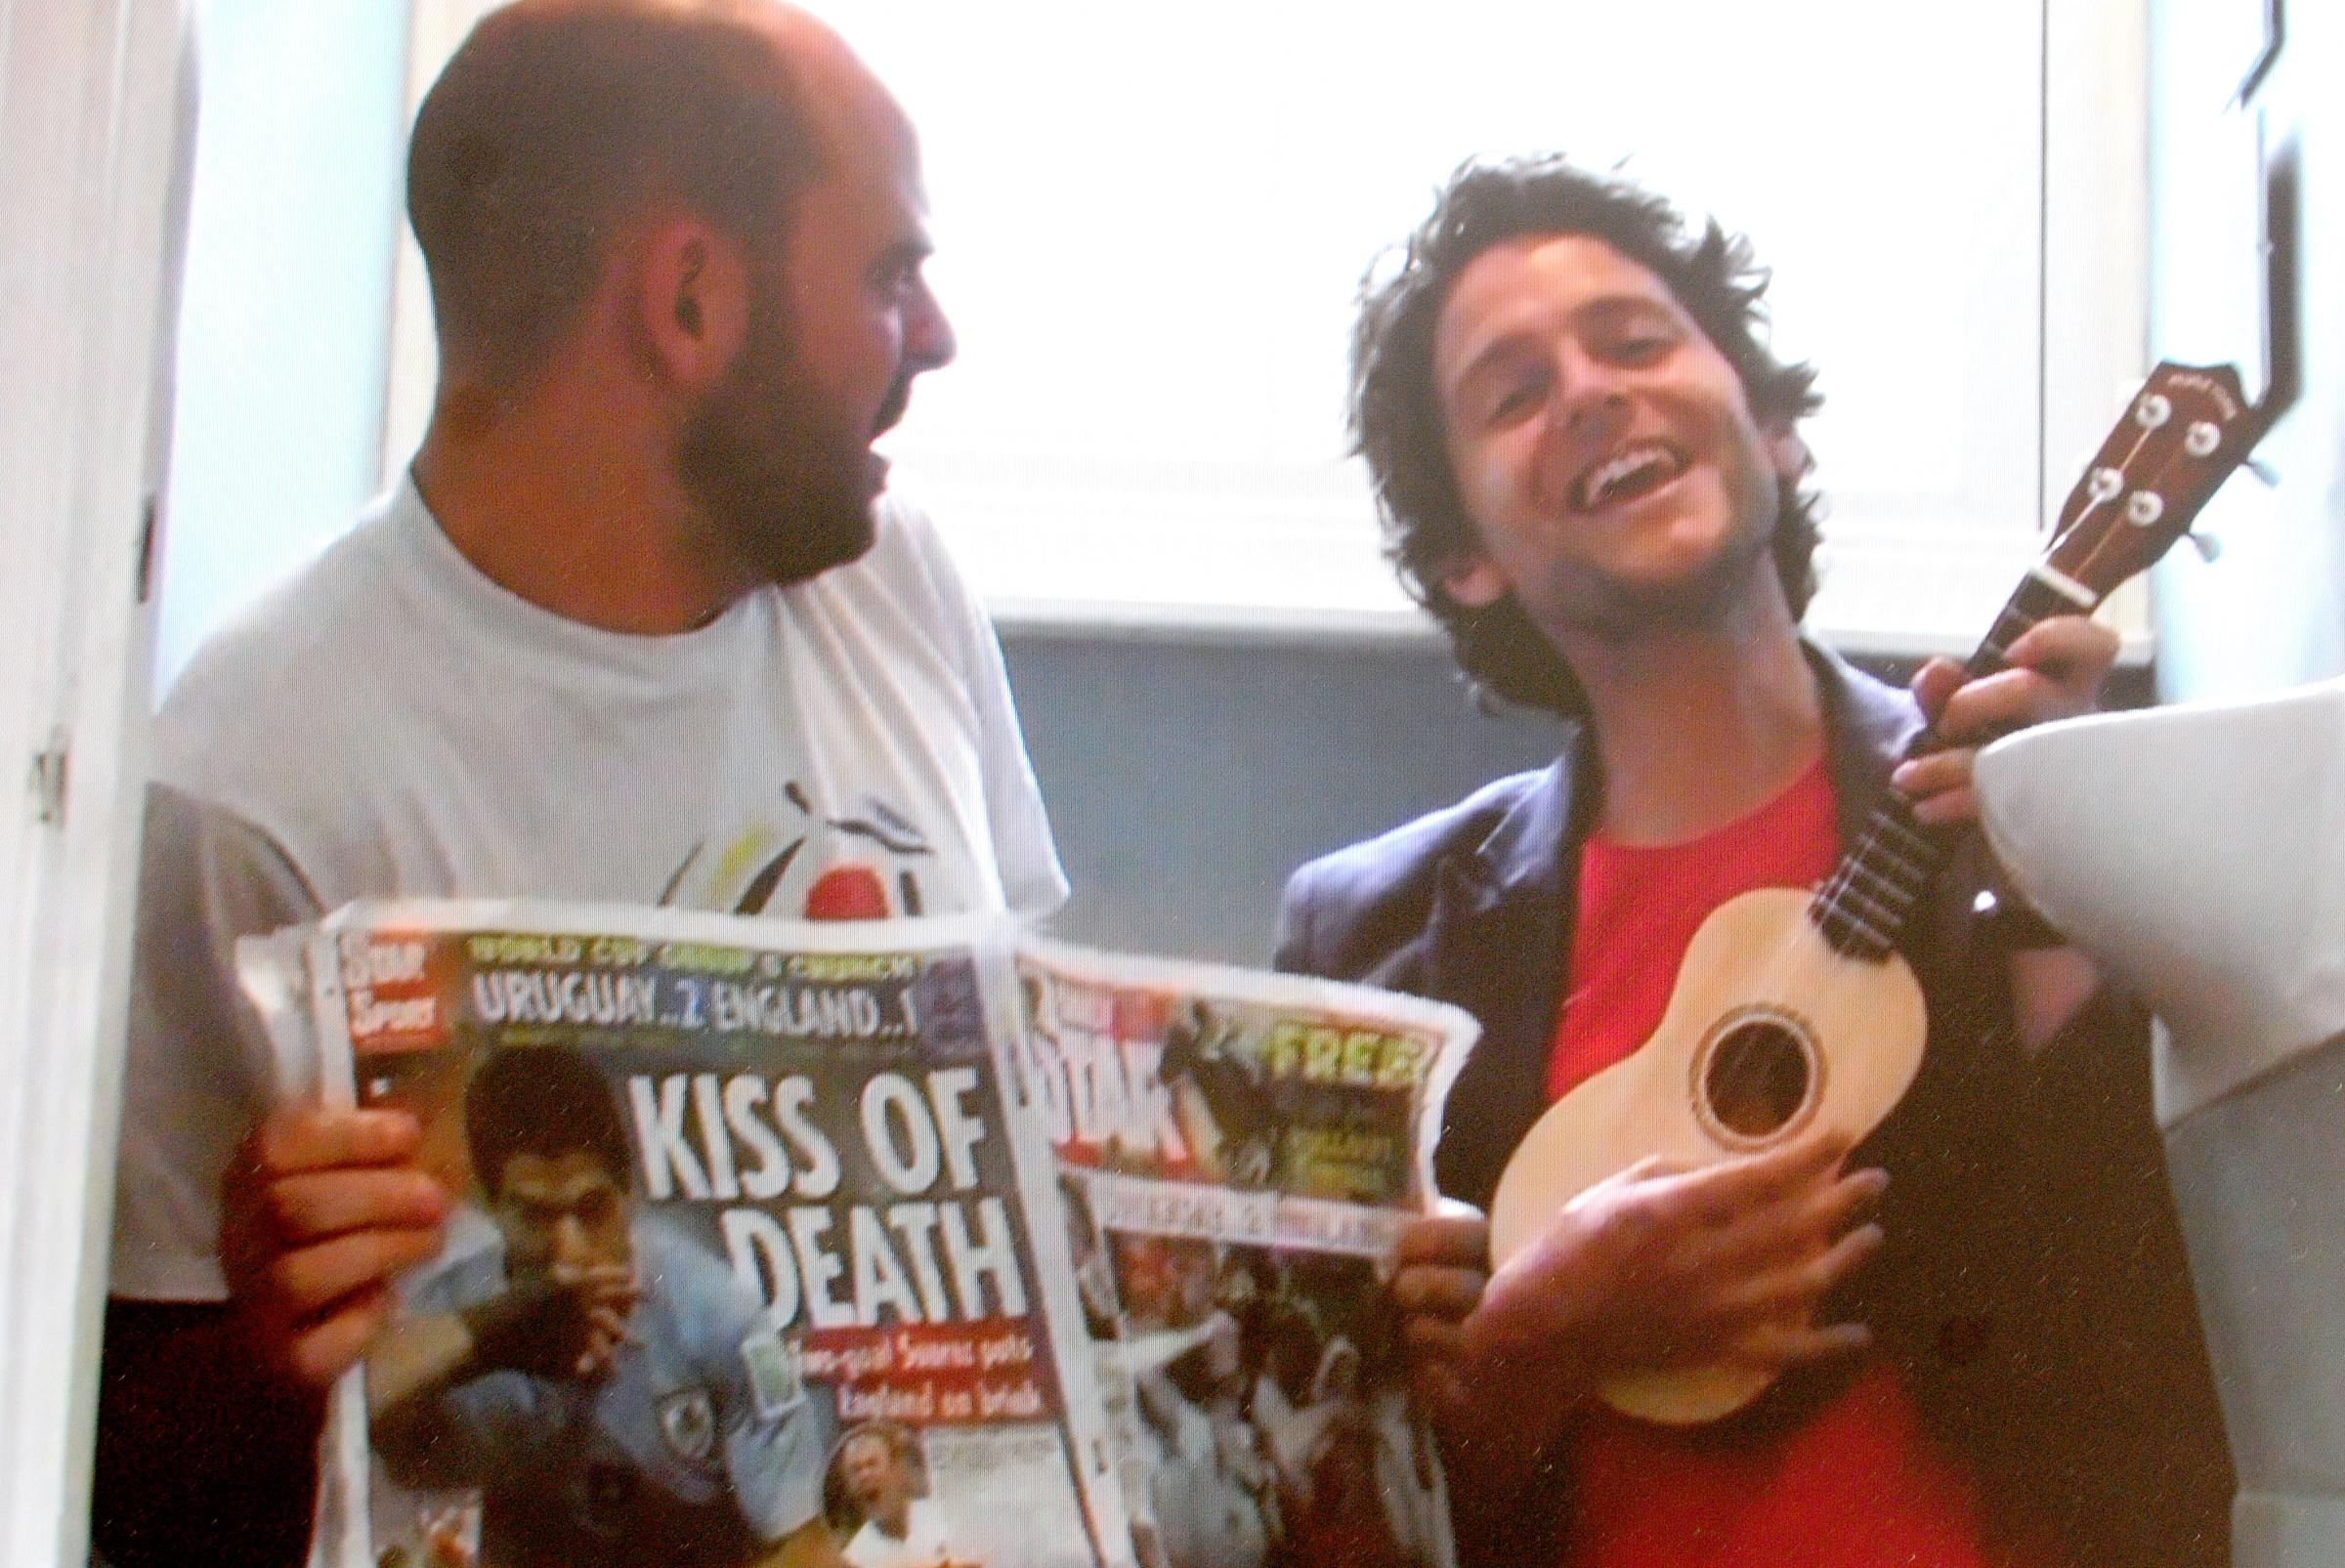 York teachers release second World Cup song